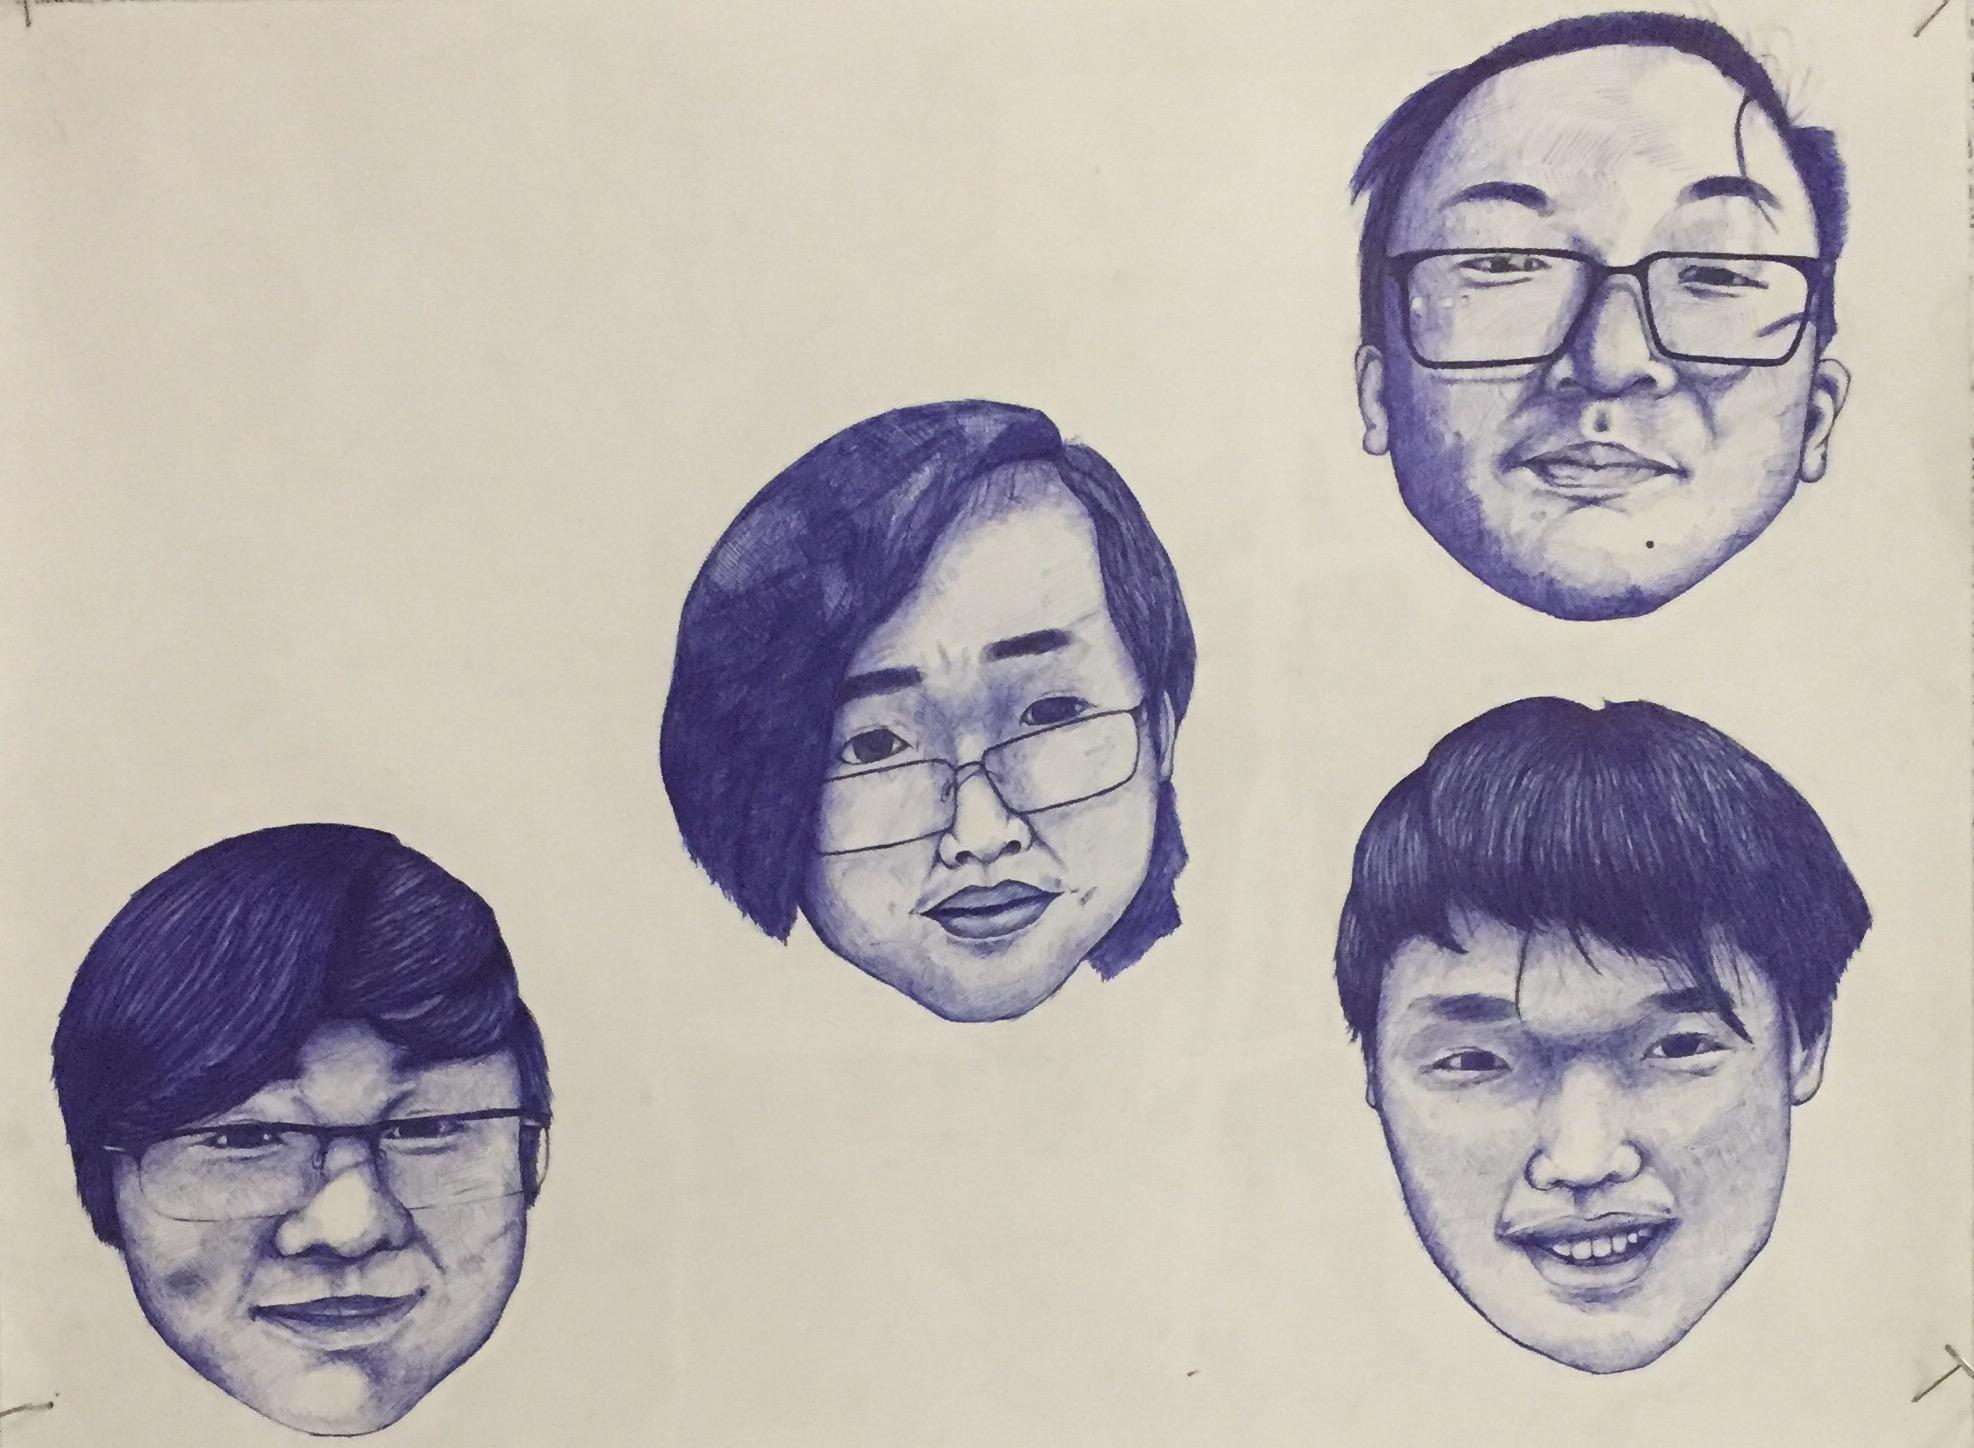 Eighth grader Duc, from Holmes Middle School, drew this drawing called Blue Smiles.